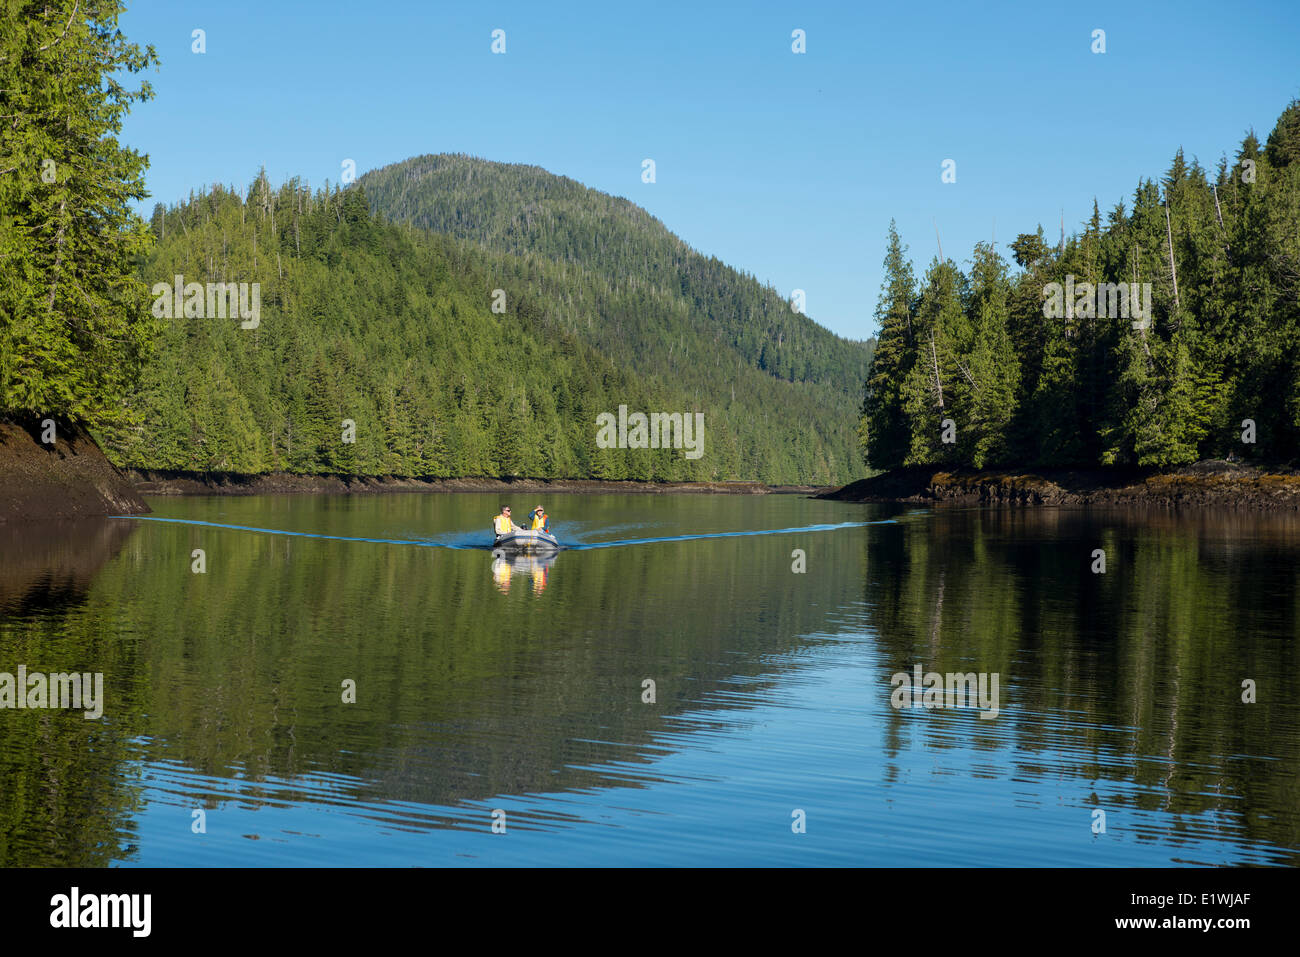 Yachter in small inflatable, Nimmo Bay Wilderness Resort, British Columbia, Canada - Stock Image